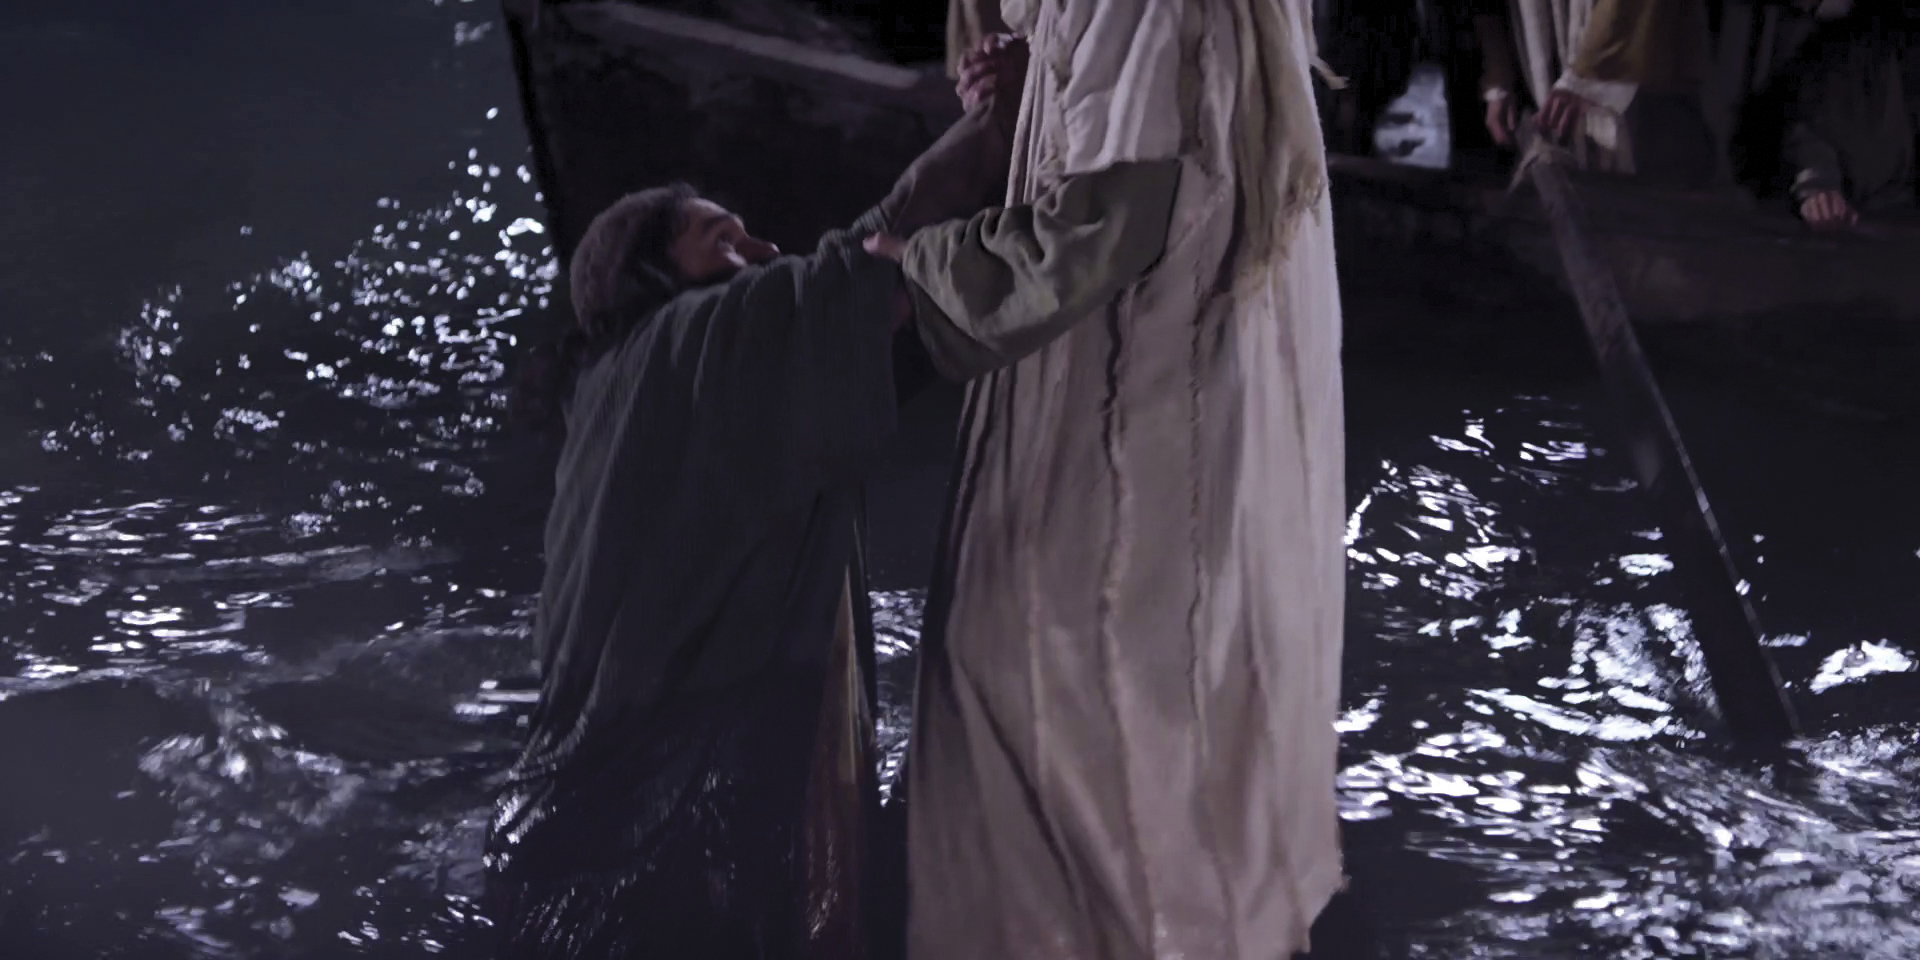 Christ reaches down to pull Peter out of the water after Peter doubts and begins to sink.